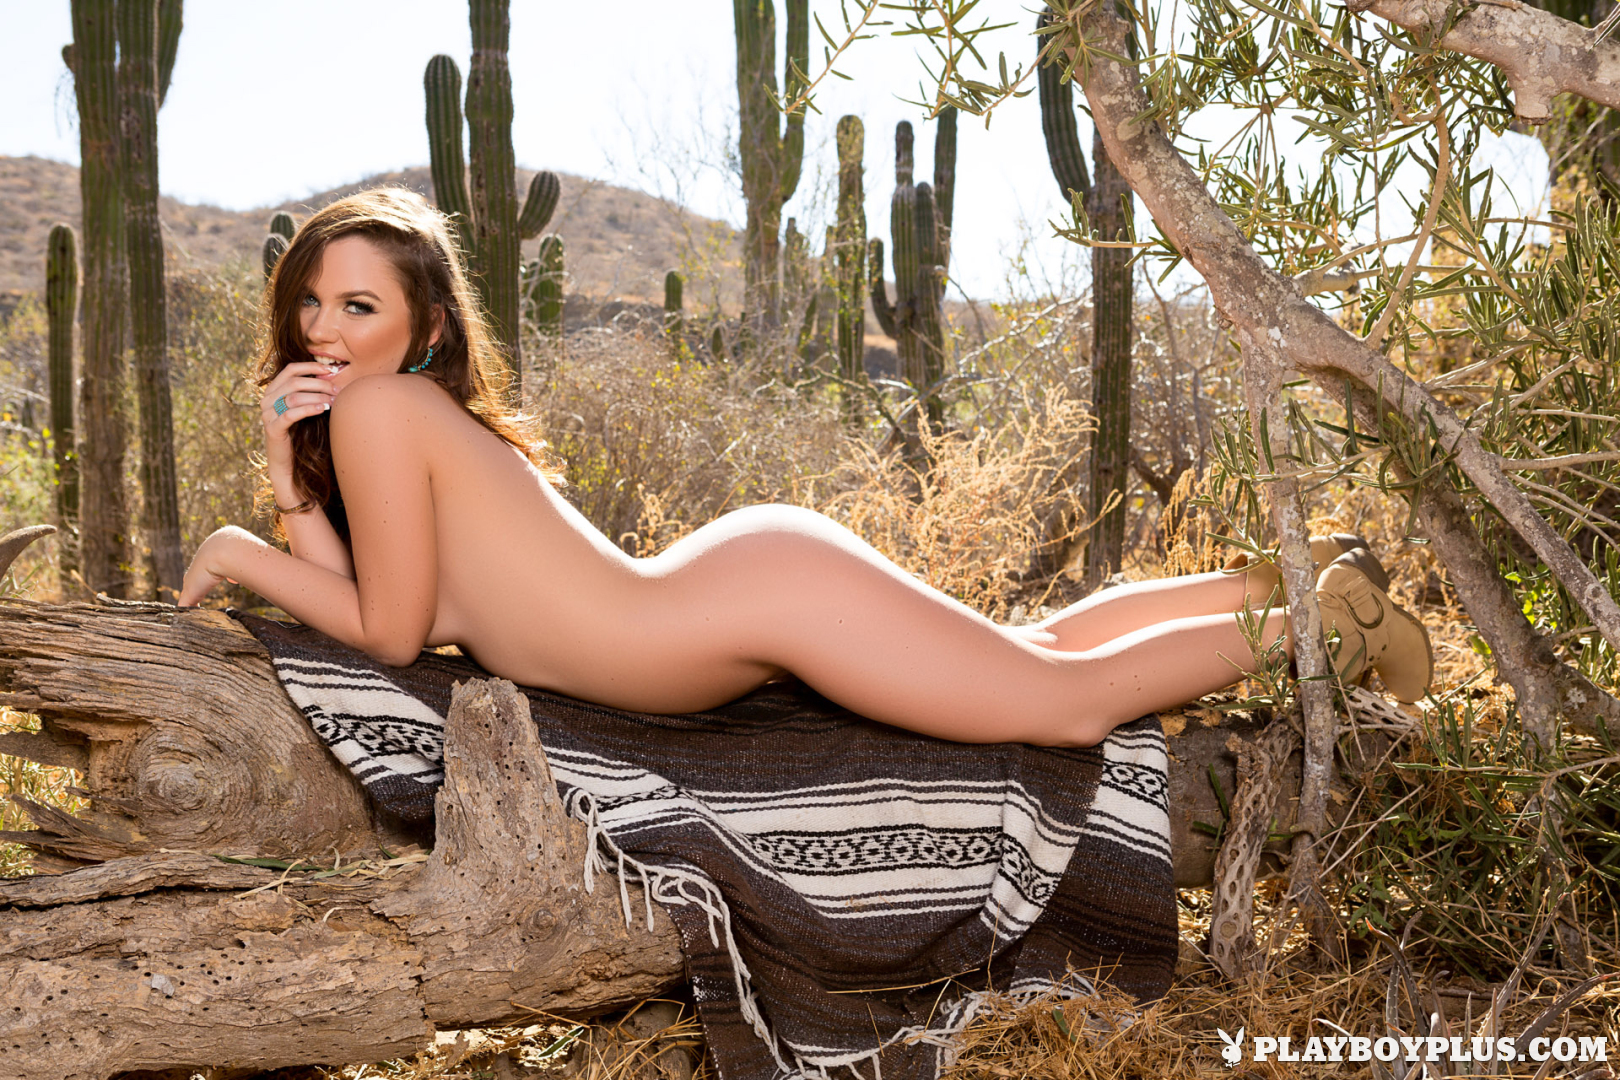 Playboy Cybergirl: Ashleigh Rae Nude outdoors in the desert at Playboy Plus!